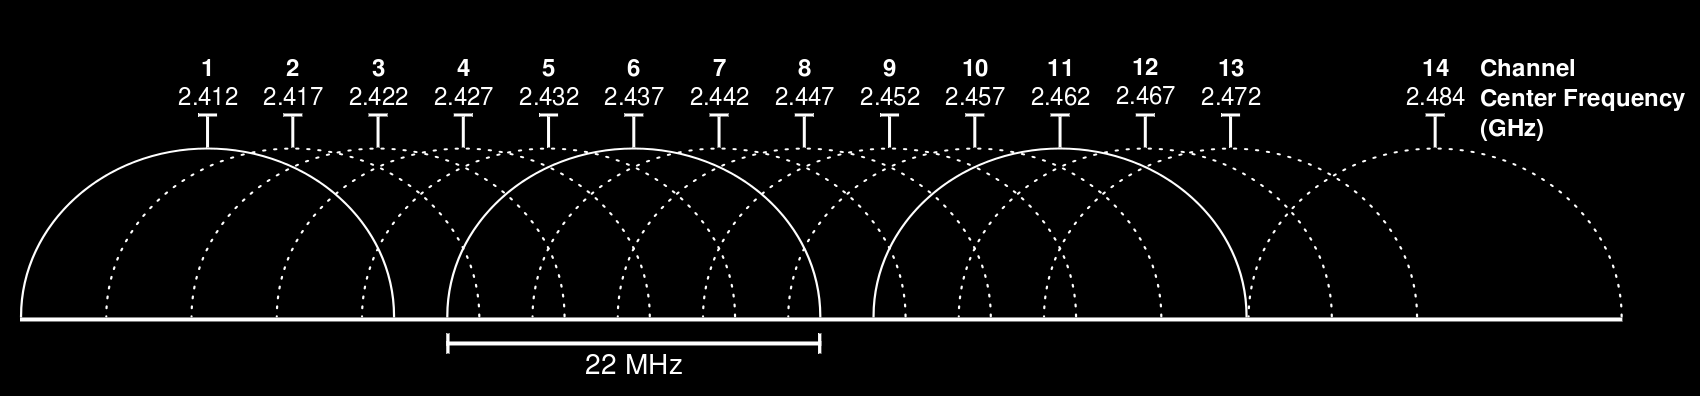 Figure 2.2: The WiFi channels in the 2.4 GHz ISM band that most of the devices in the 2.4 GHz ISM band can be categorized as short-range technology.